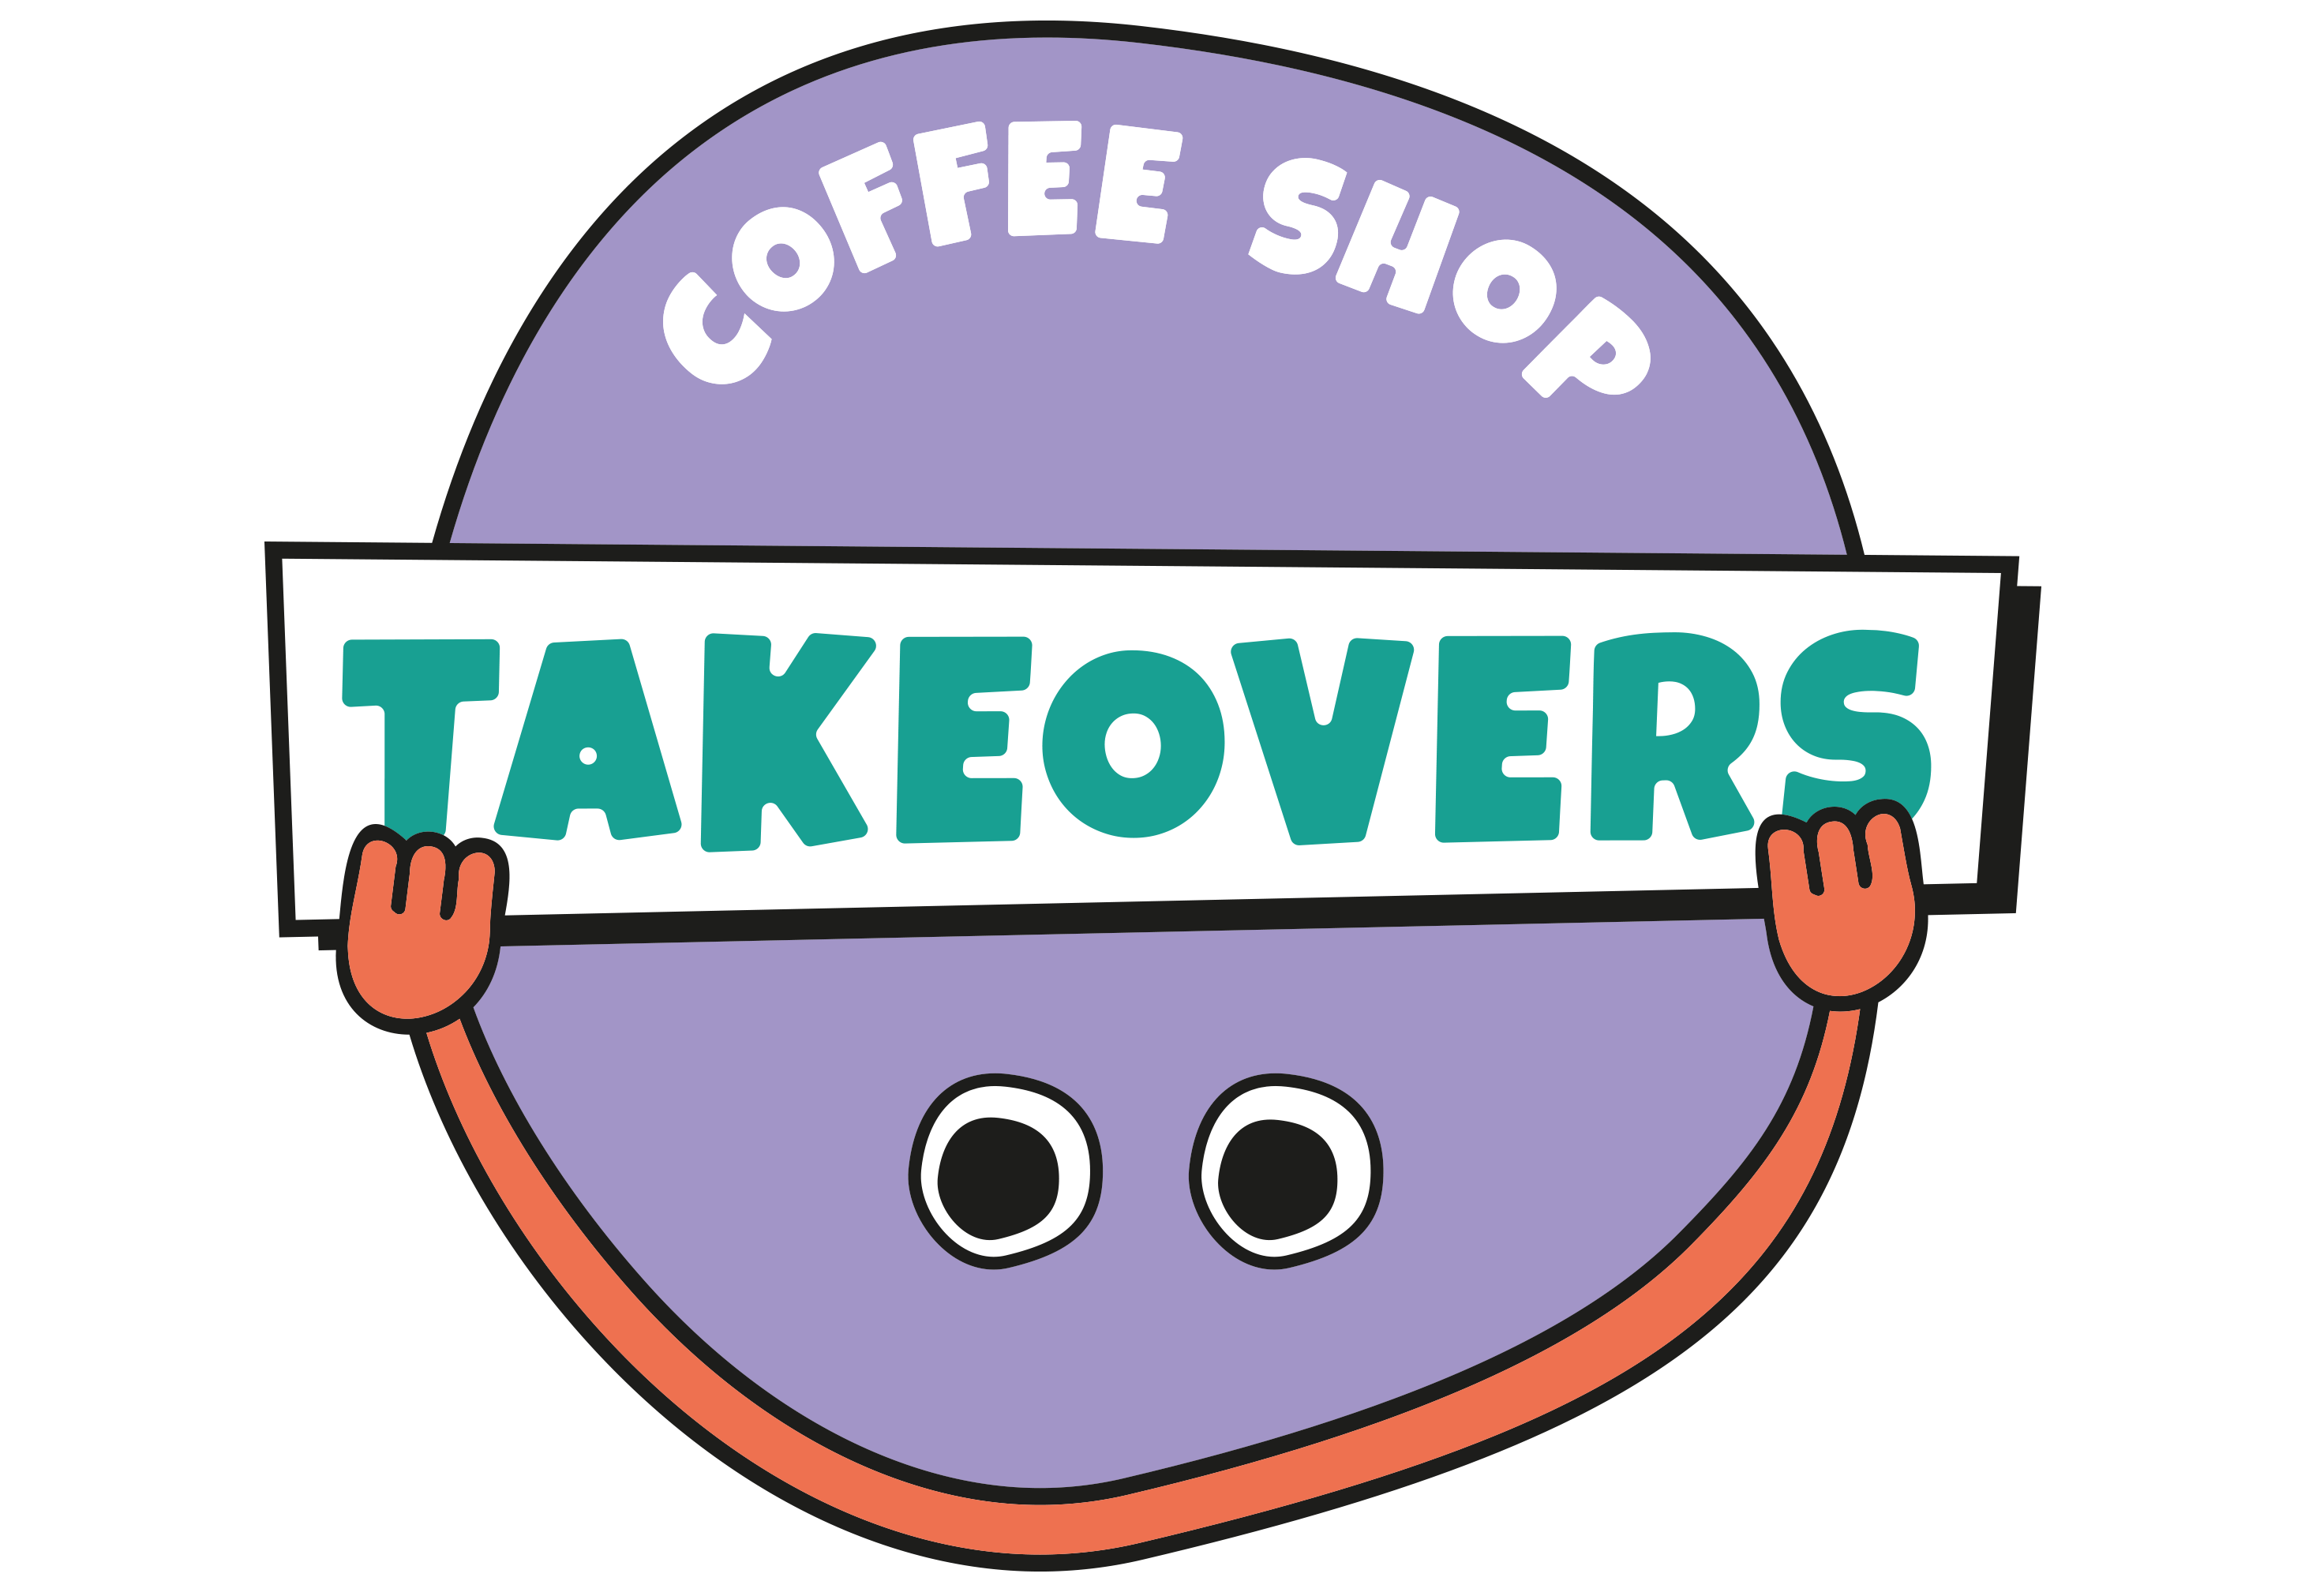 coffee shop takeovers primary logo design